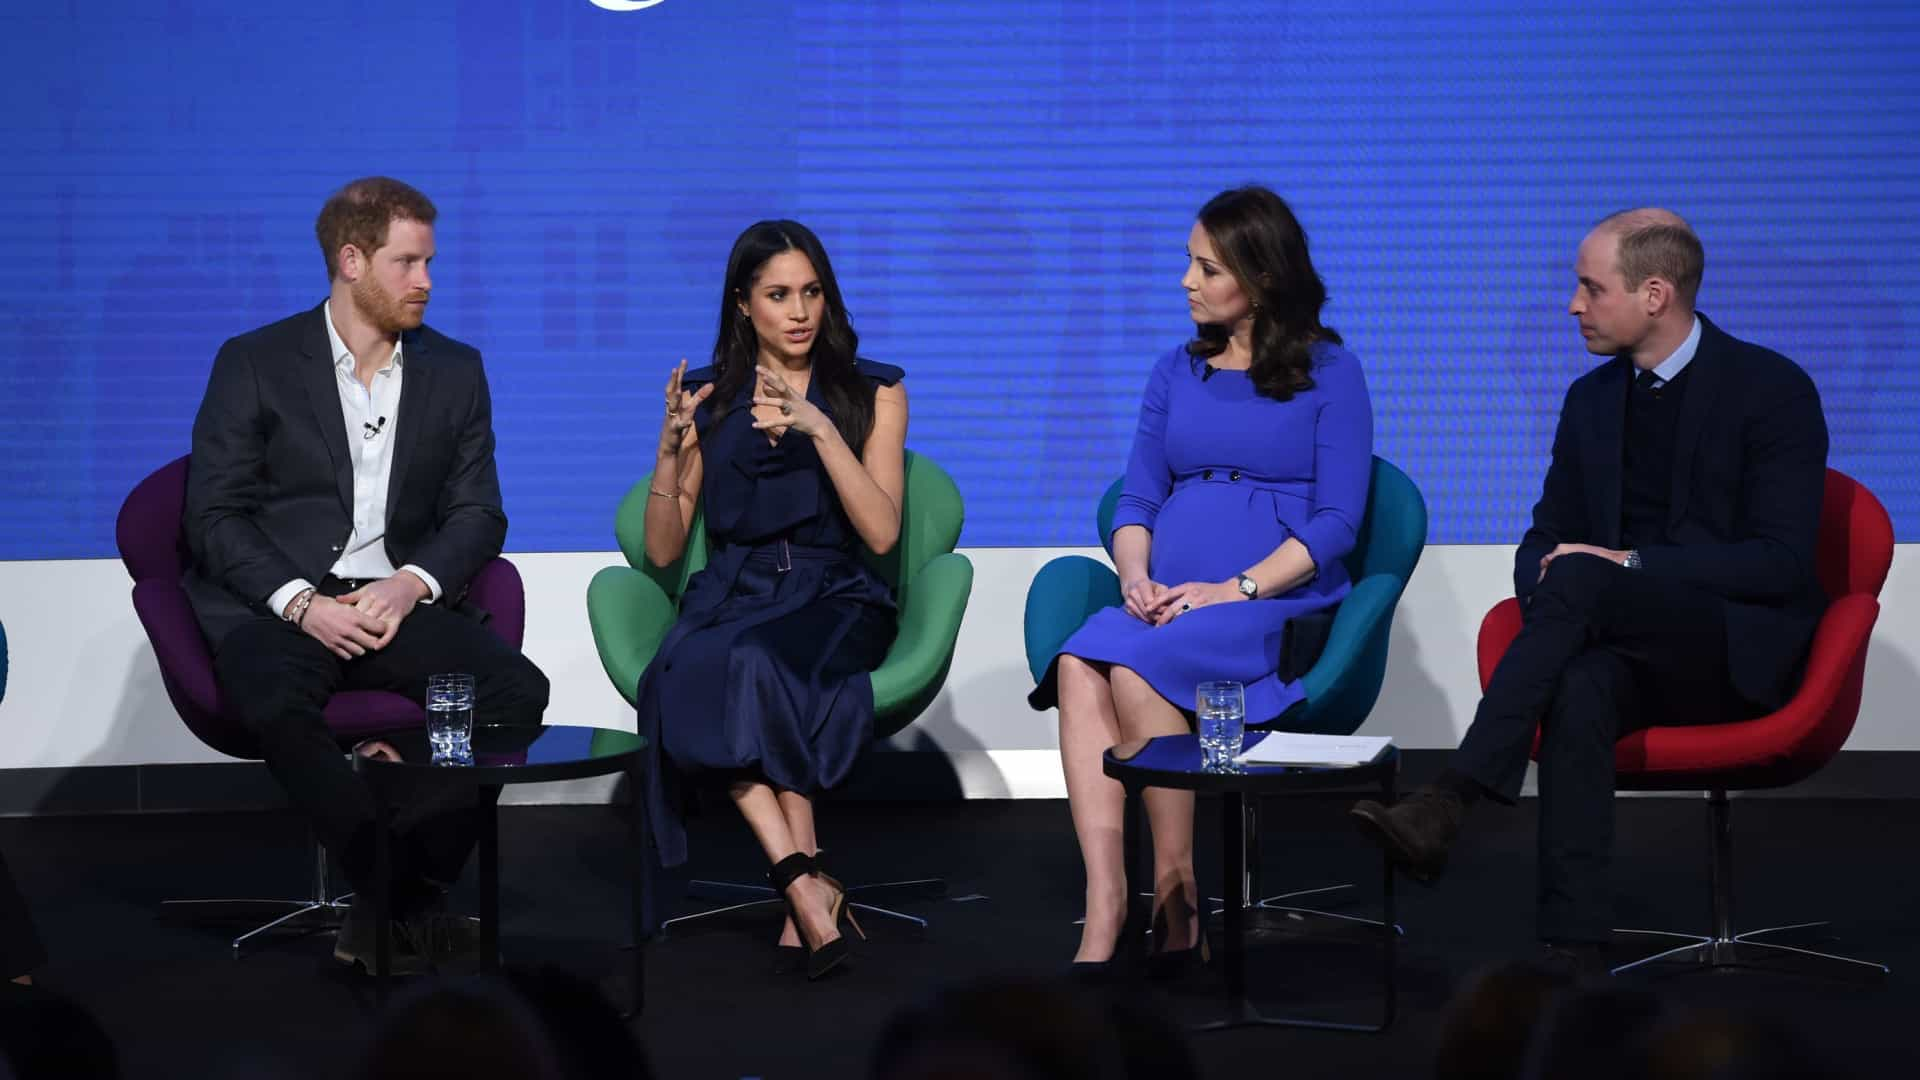 Meghan une-se a William, Harry e Kate e assume cargo na Royal Foundation